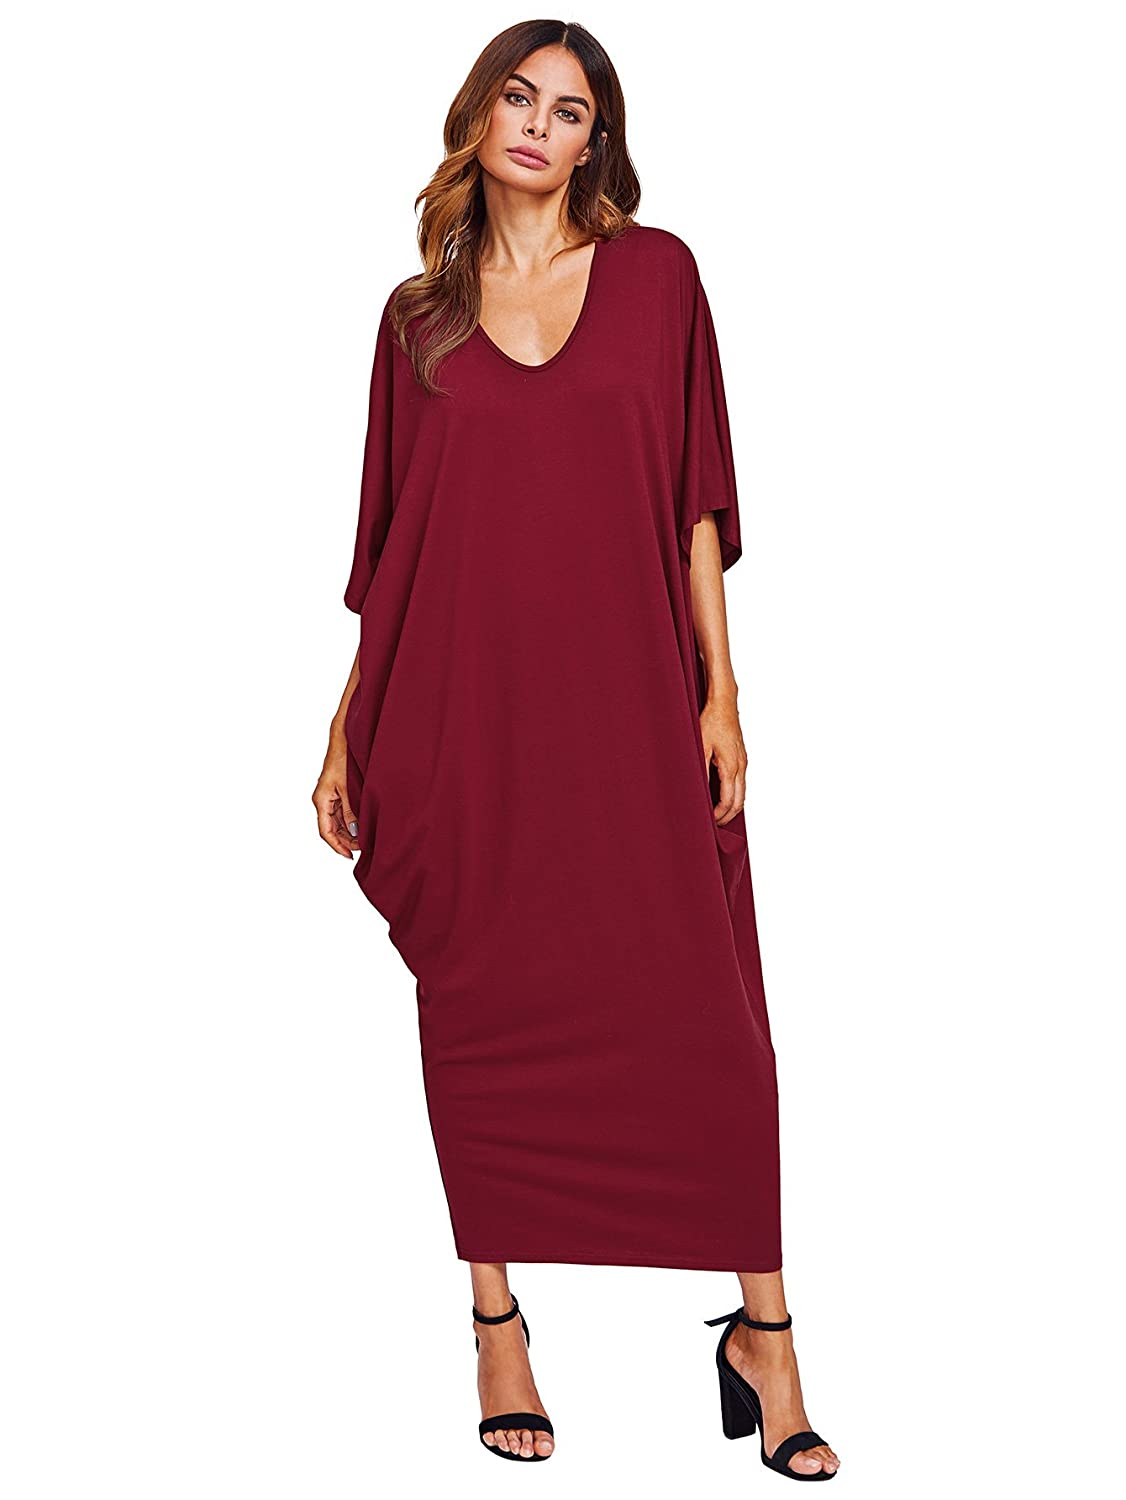 dfb1966f846 Verdusa Women s Casual Long Sleeve Oversized Loose Pocket Plus Size Maxi  Dress at Amazon Women s Clothing store